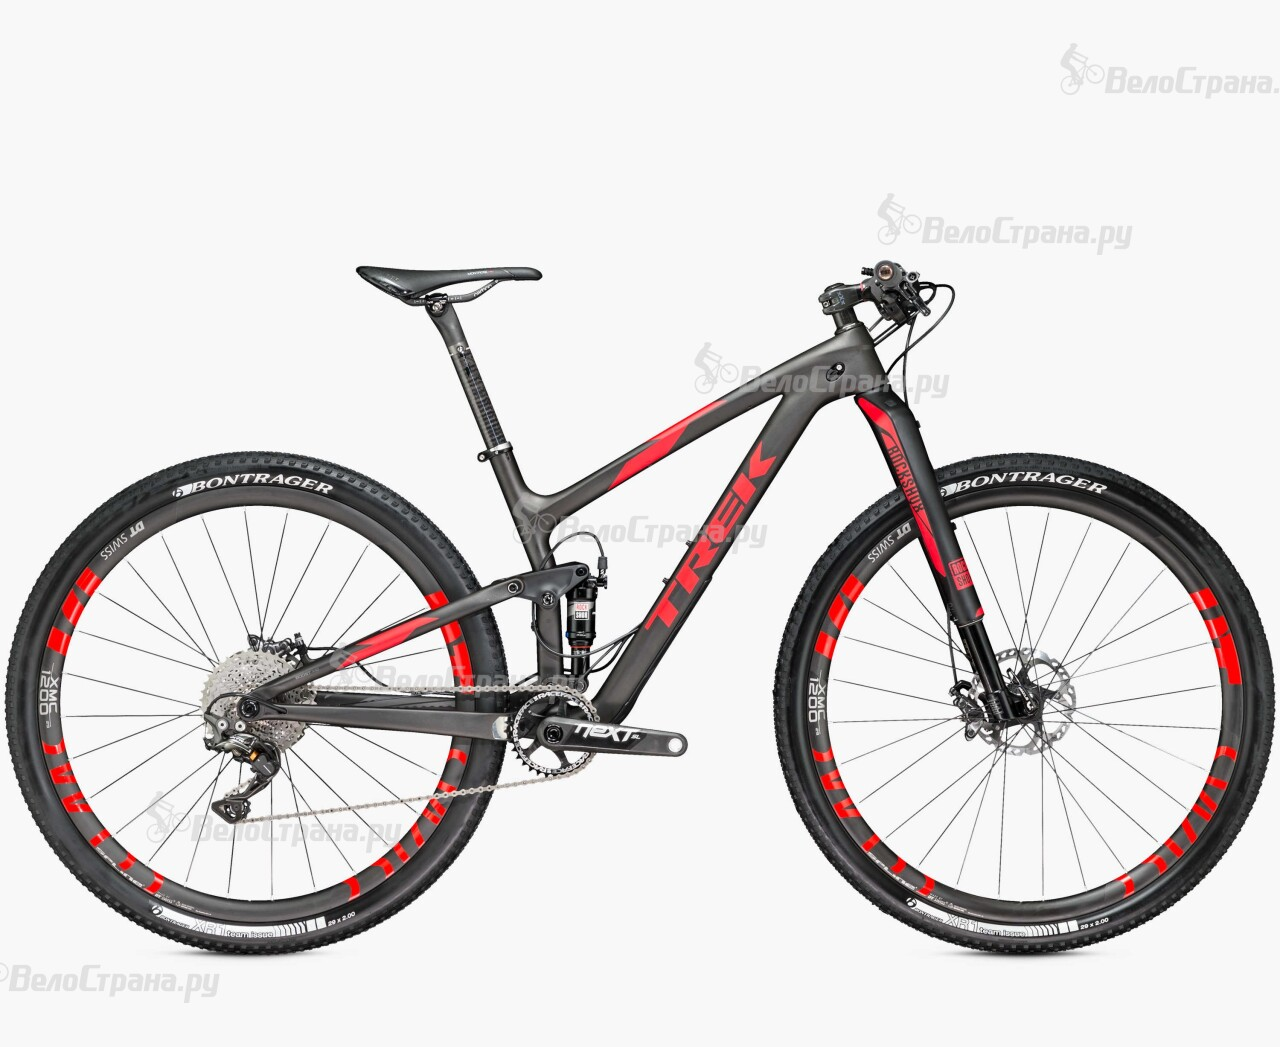 Велосипед Trek Top Fuel 9.9 SL 29 (2016) велосипед trek fuel ex 9 29 2017